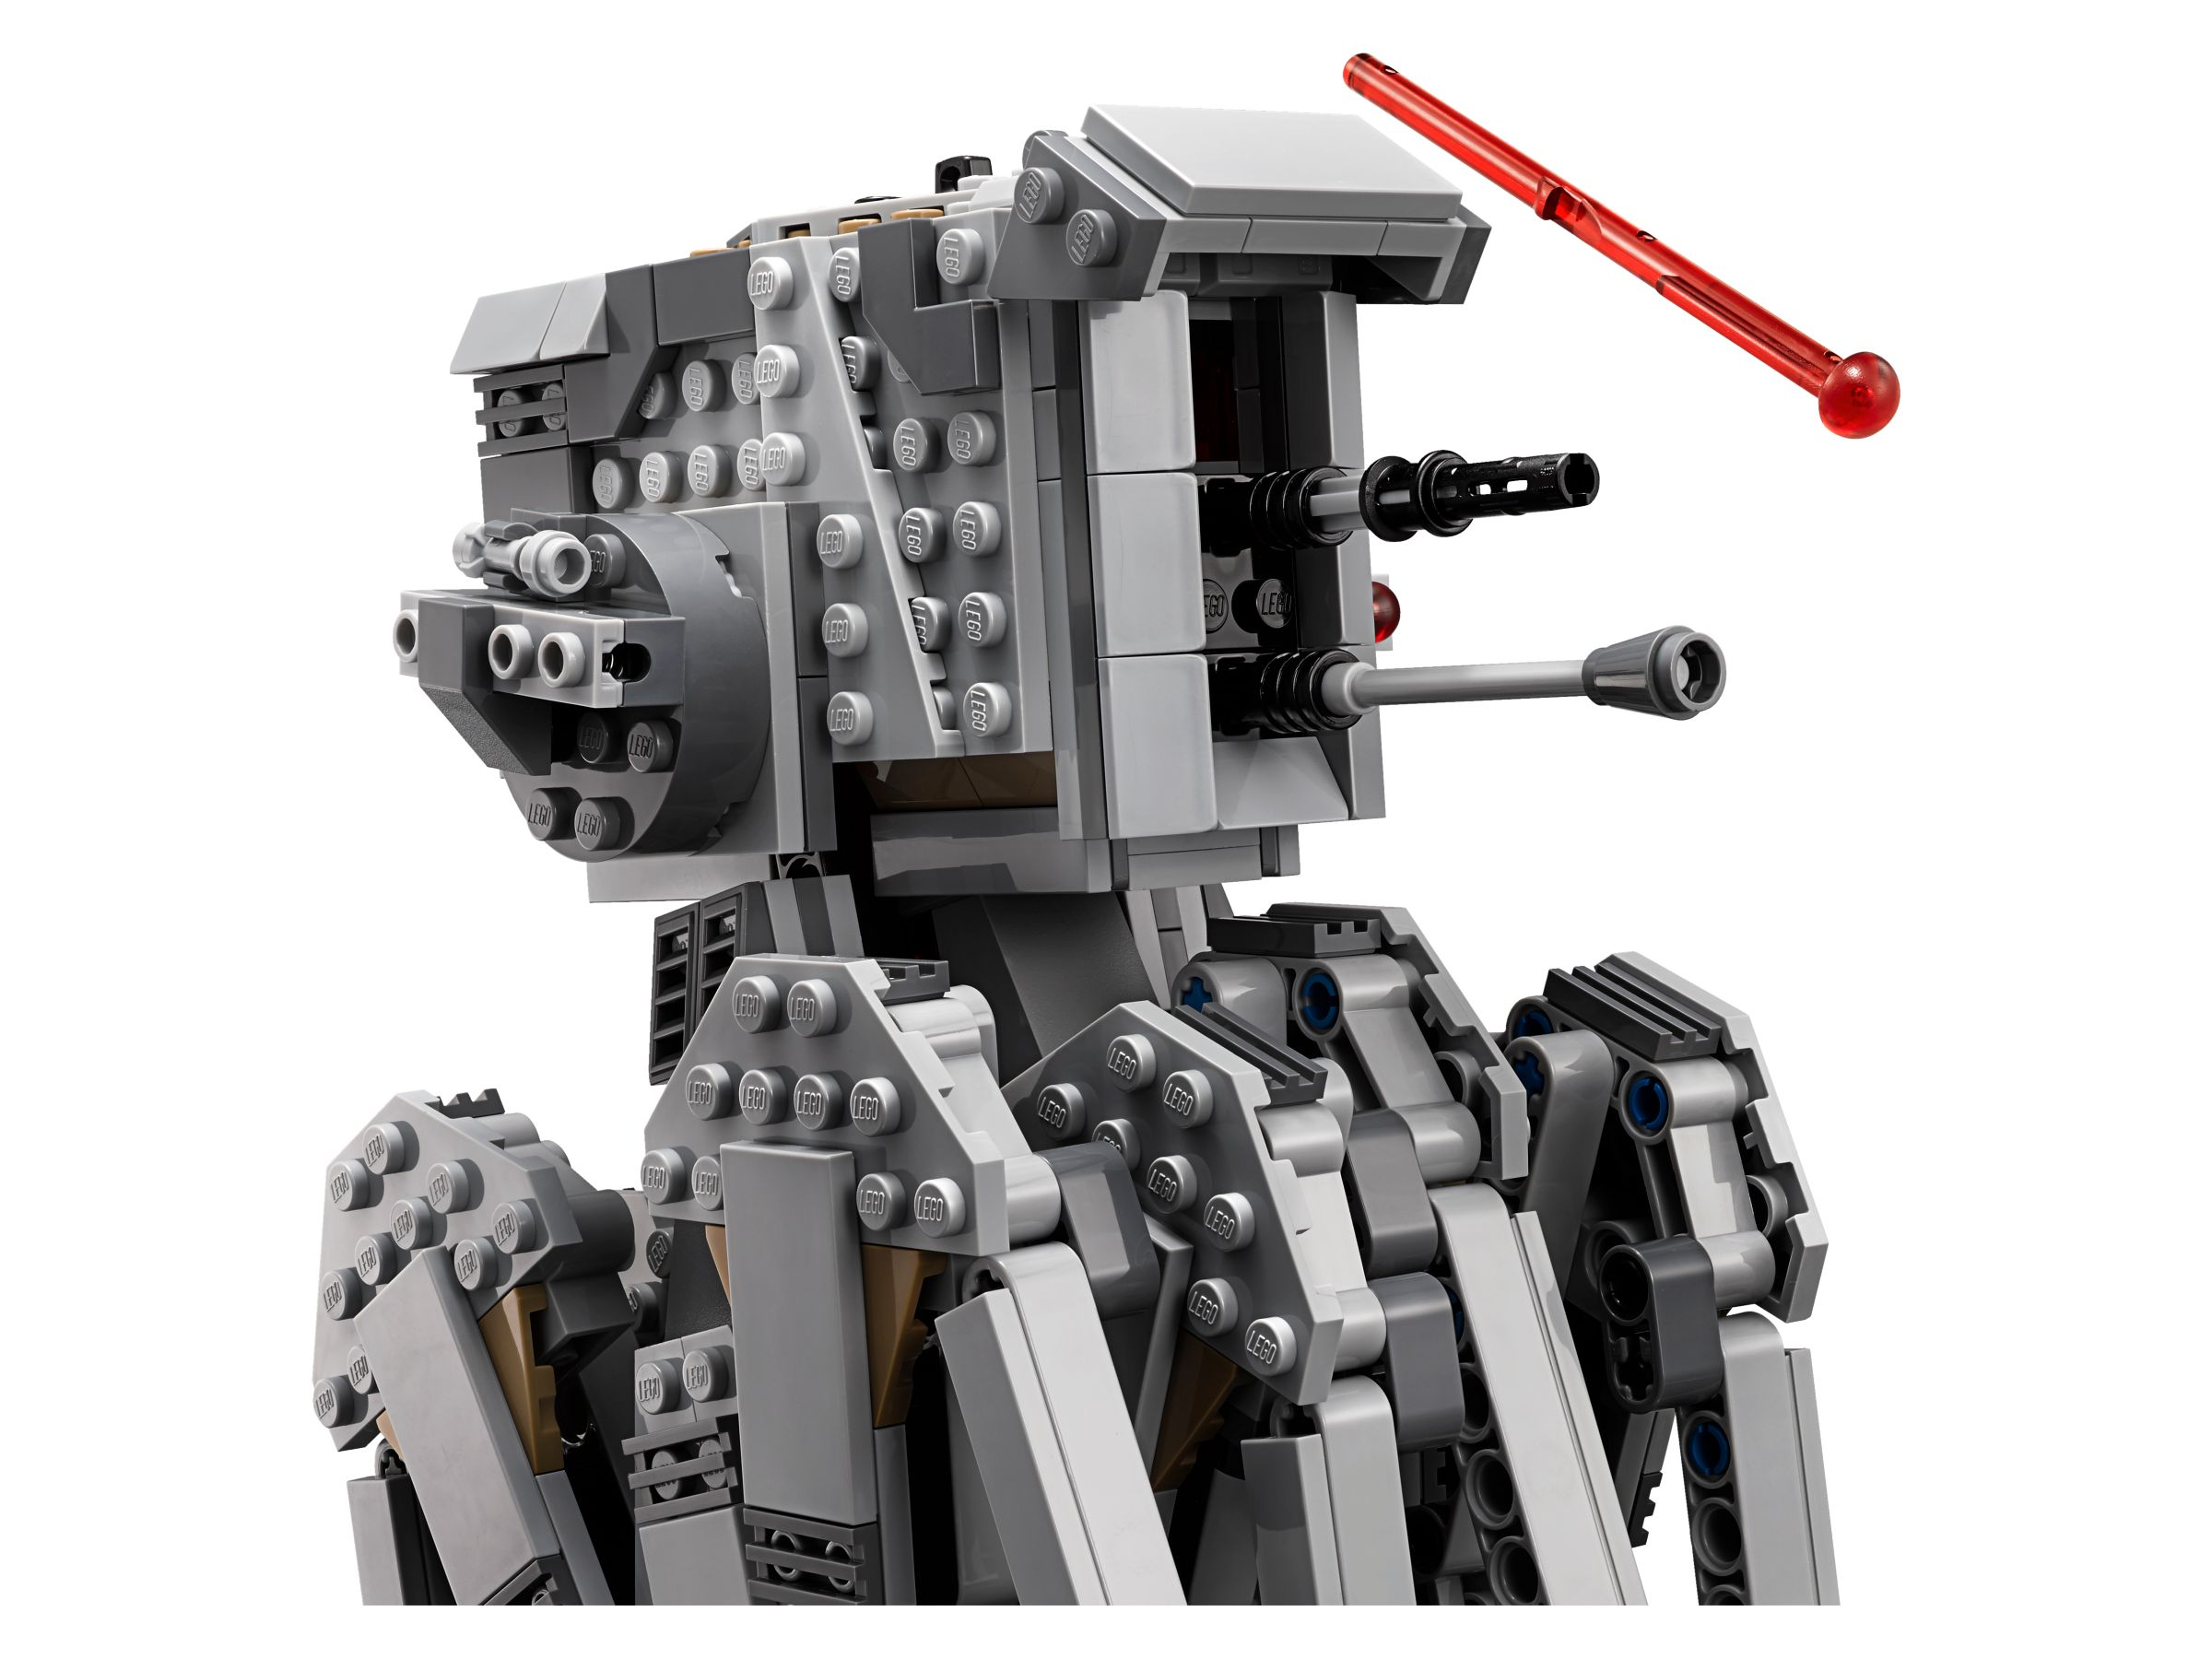 LEGO Star Wars 75177 First Order Heavy Scout Walker™ LEGO_75177_alt3.jpg